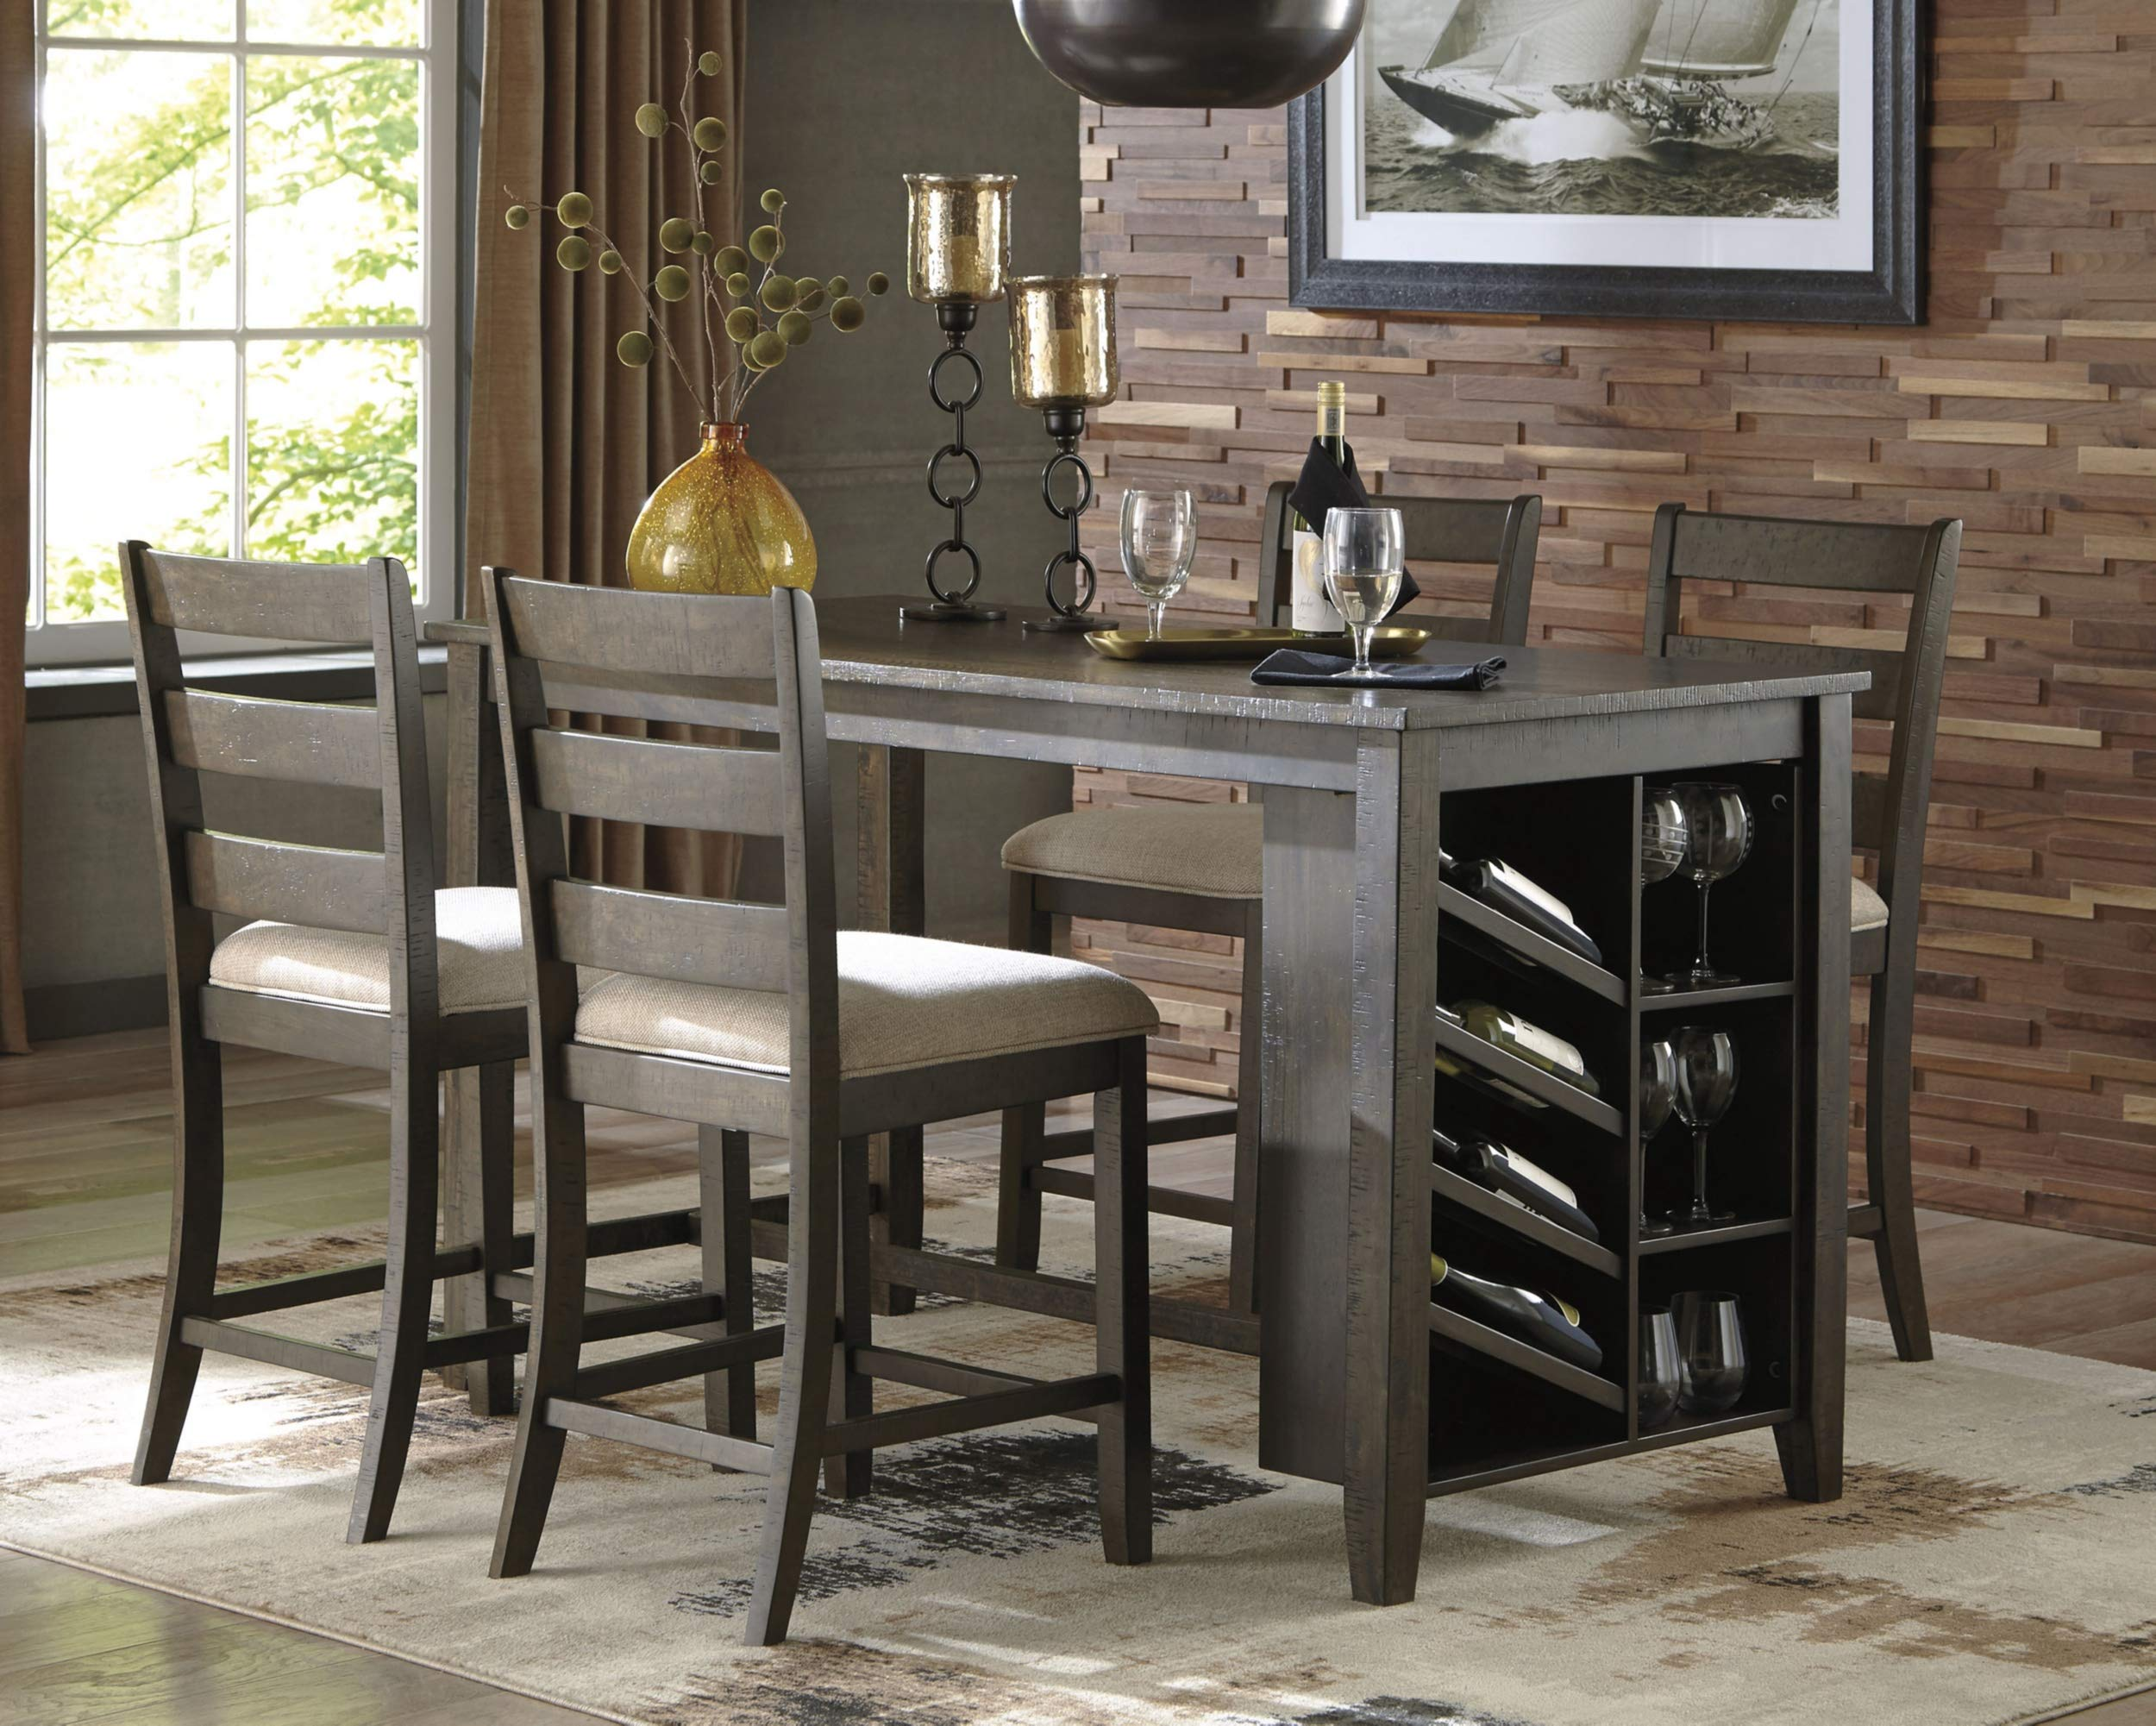 Signature Design by Ashley D397-32 Rokane Counter Height Dining Room Table, Brown by Signature Design by Ashley (Image #2)